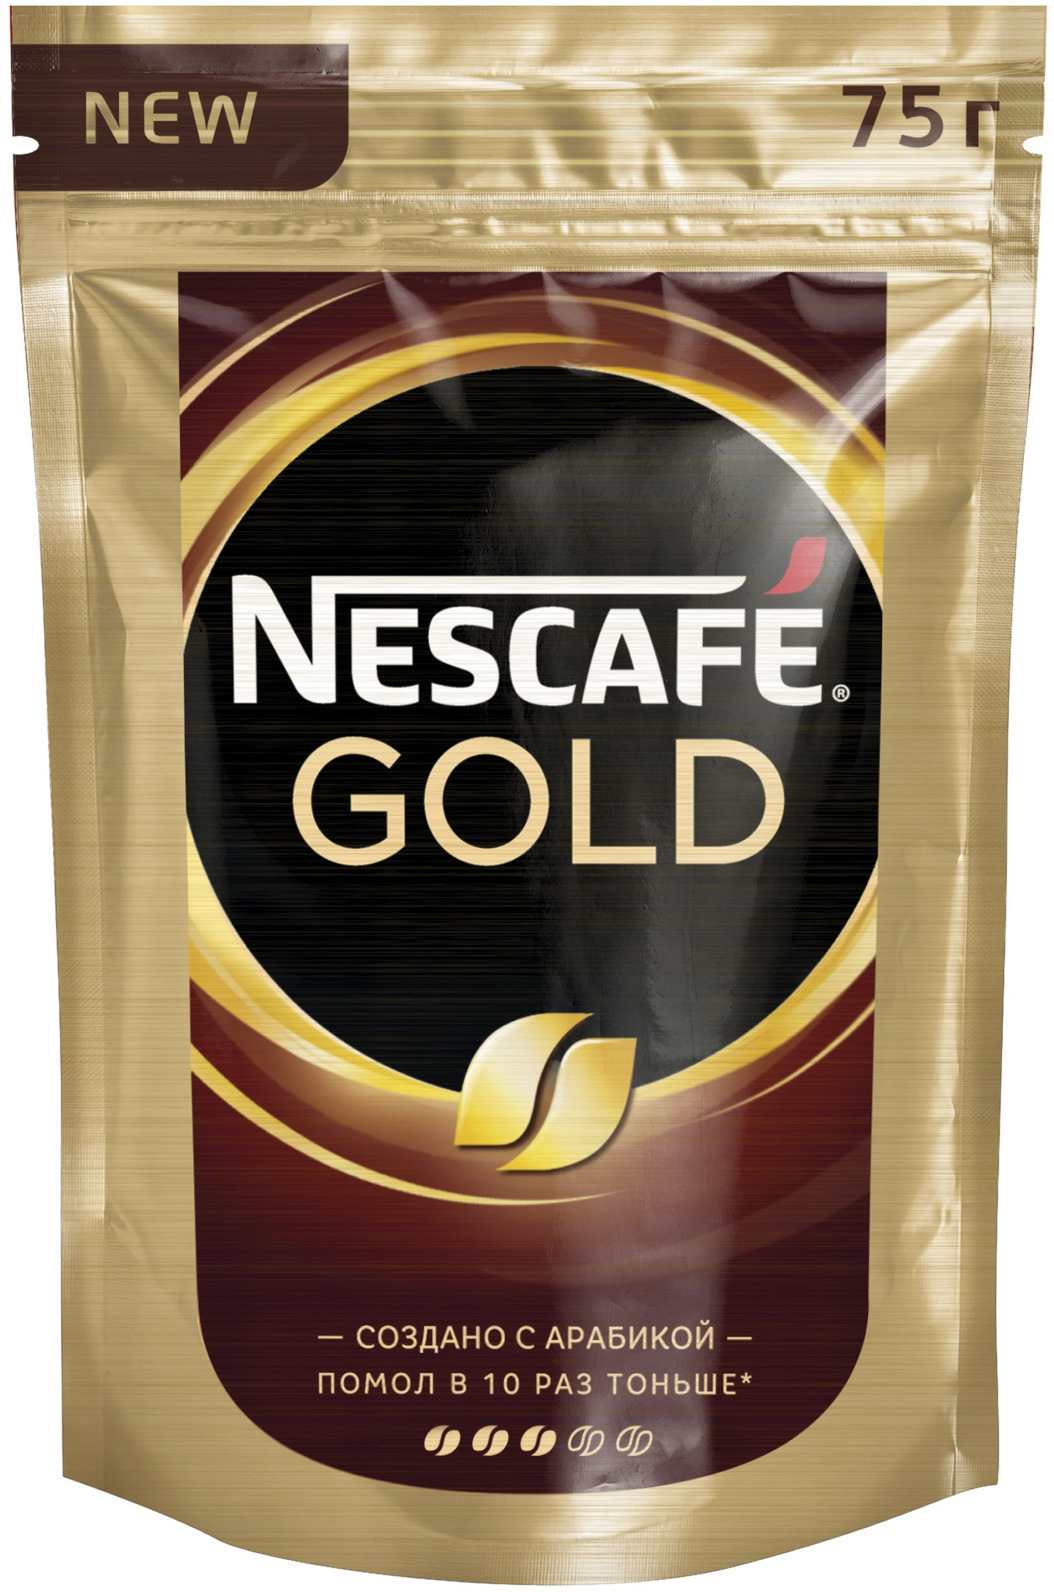 Nescafe Gold Кофе растворимый сублимированный с добавлением натурального жареного молотого кофе, 75 г